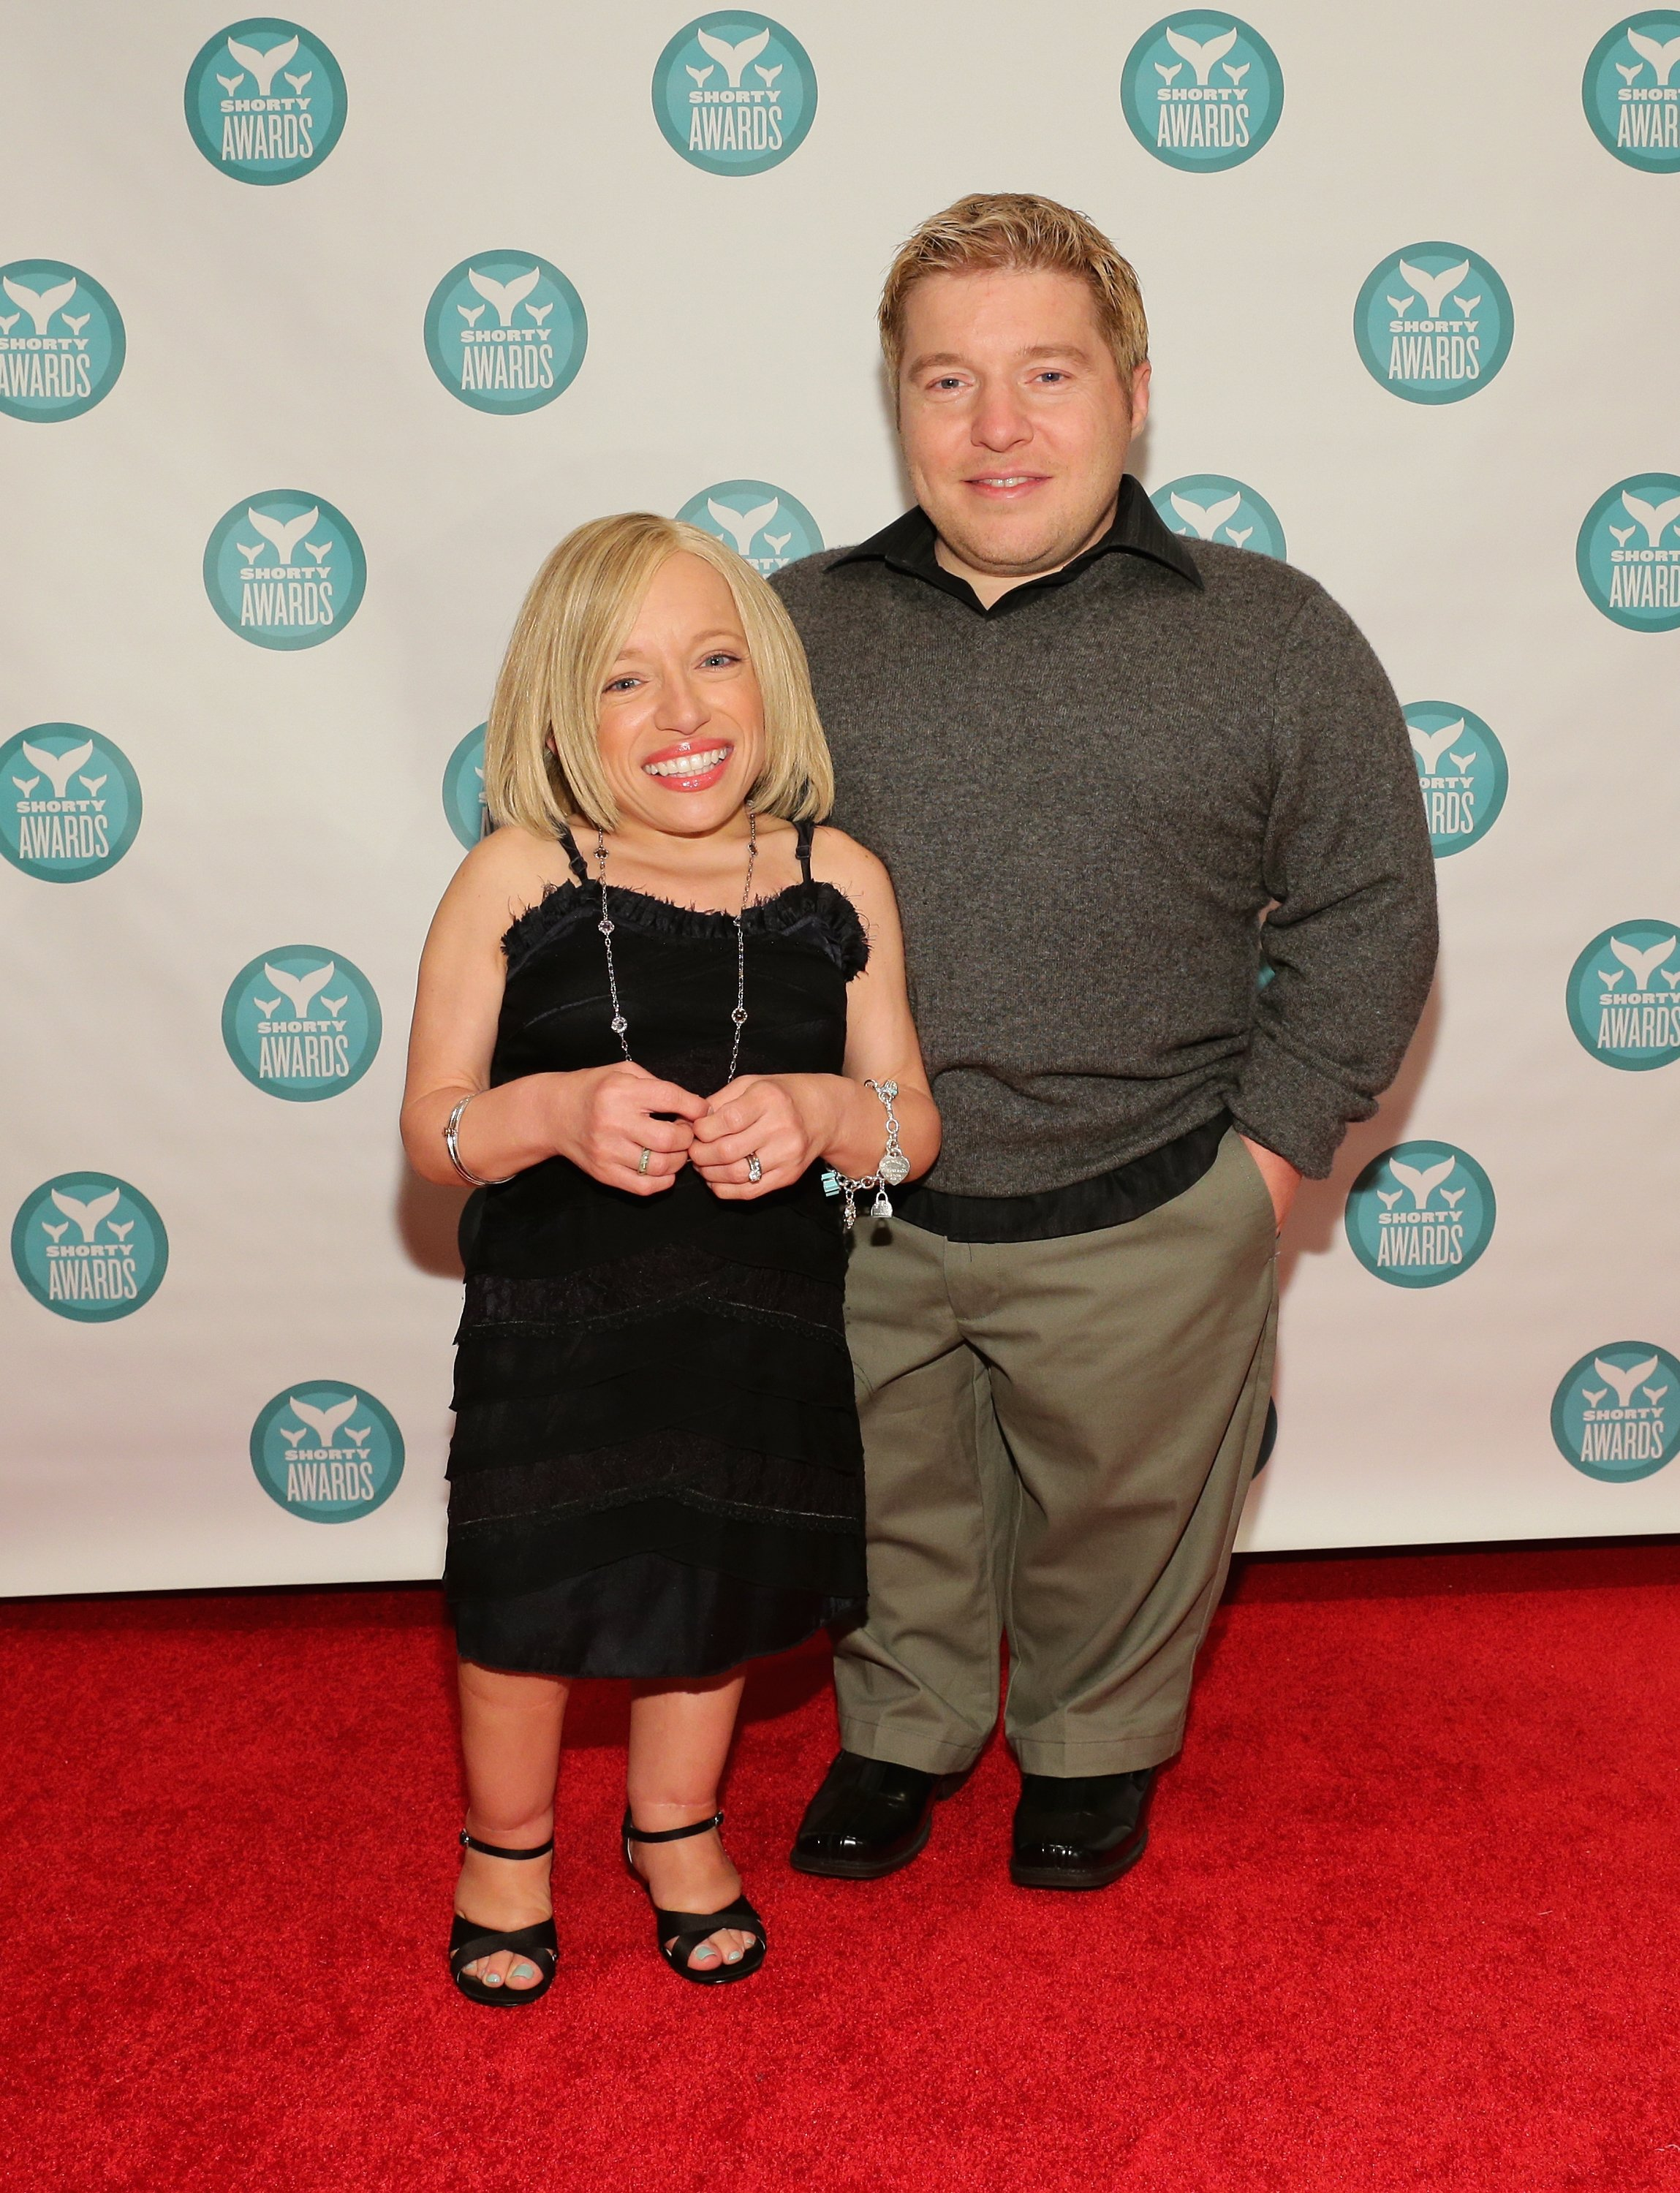 Jennifer Arnold and Bill Klein attend the 6th Annual Shorty Awards on April 7, 2014, in New York City. | Source: Getty Images.